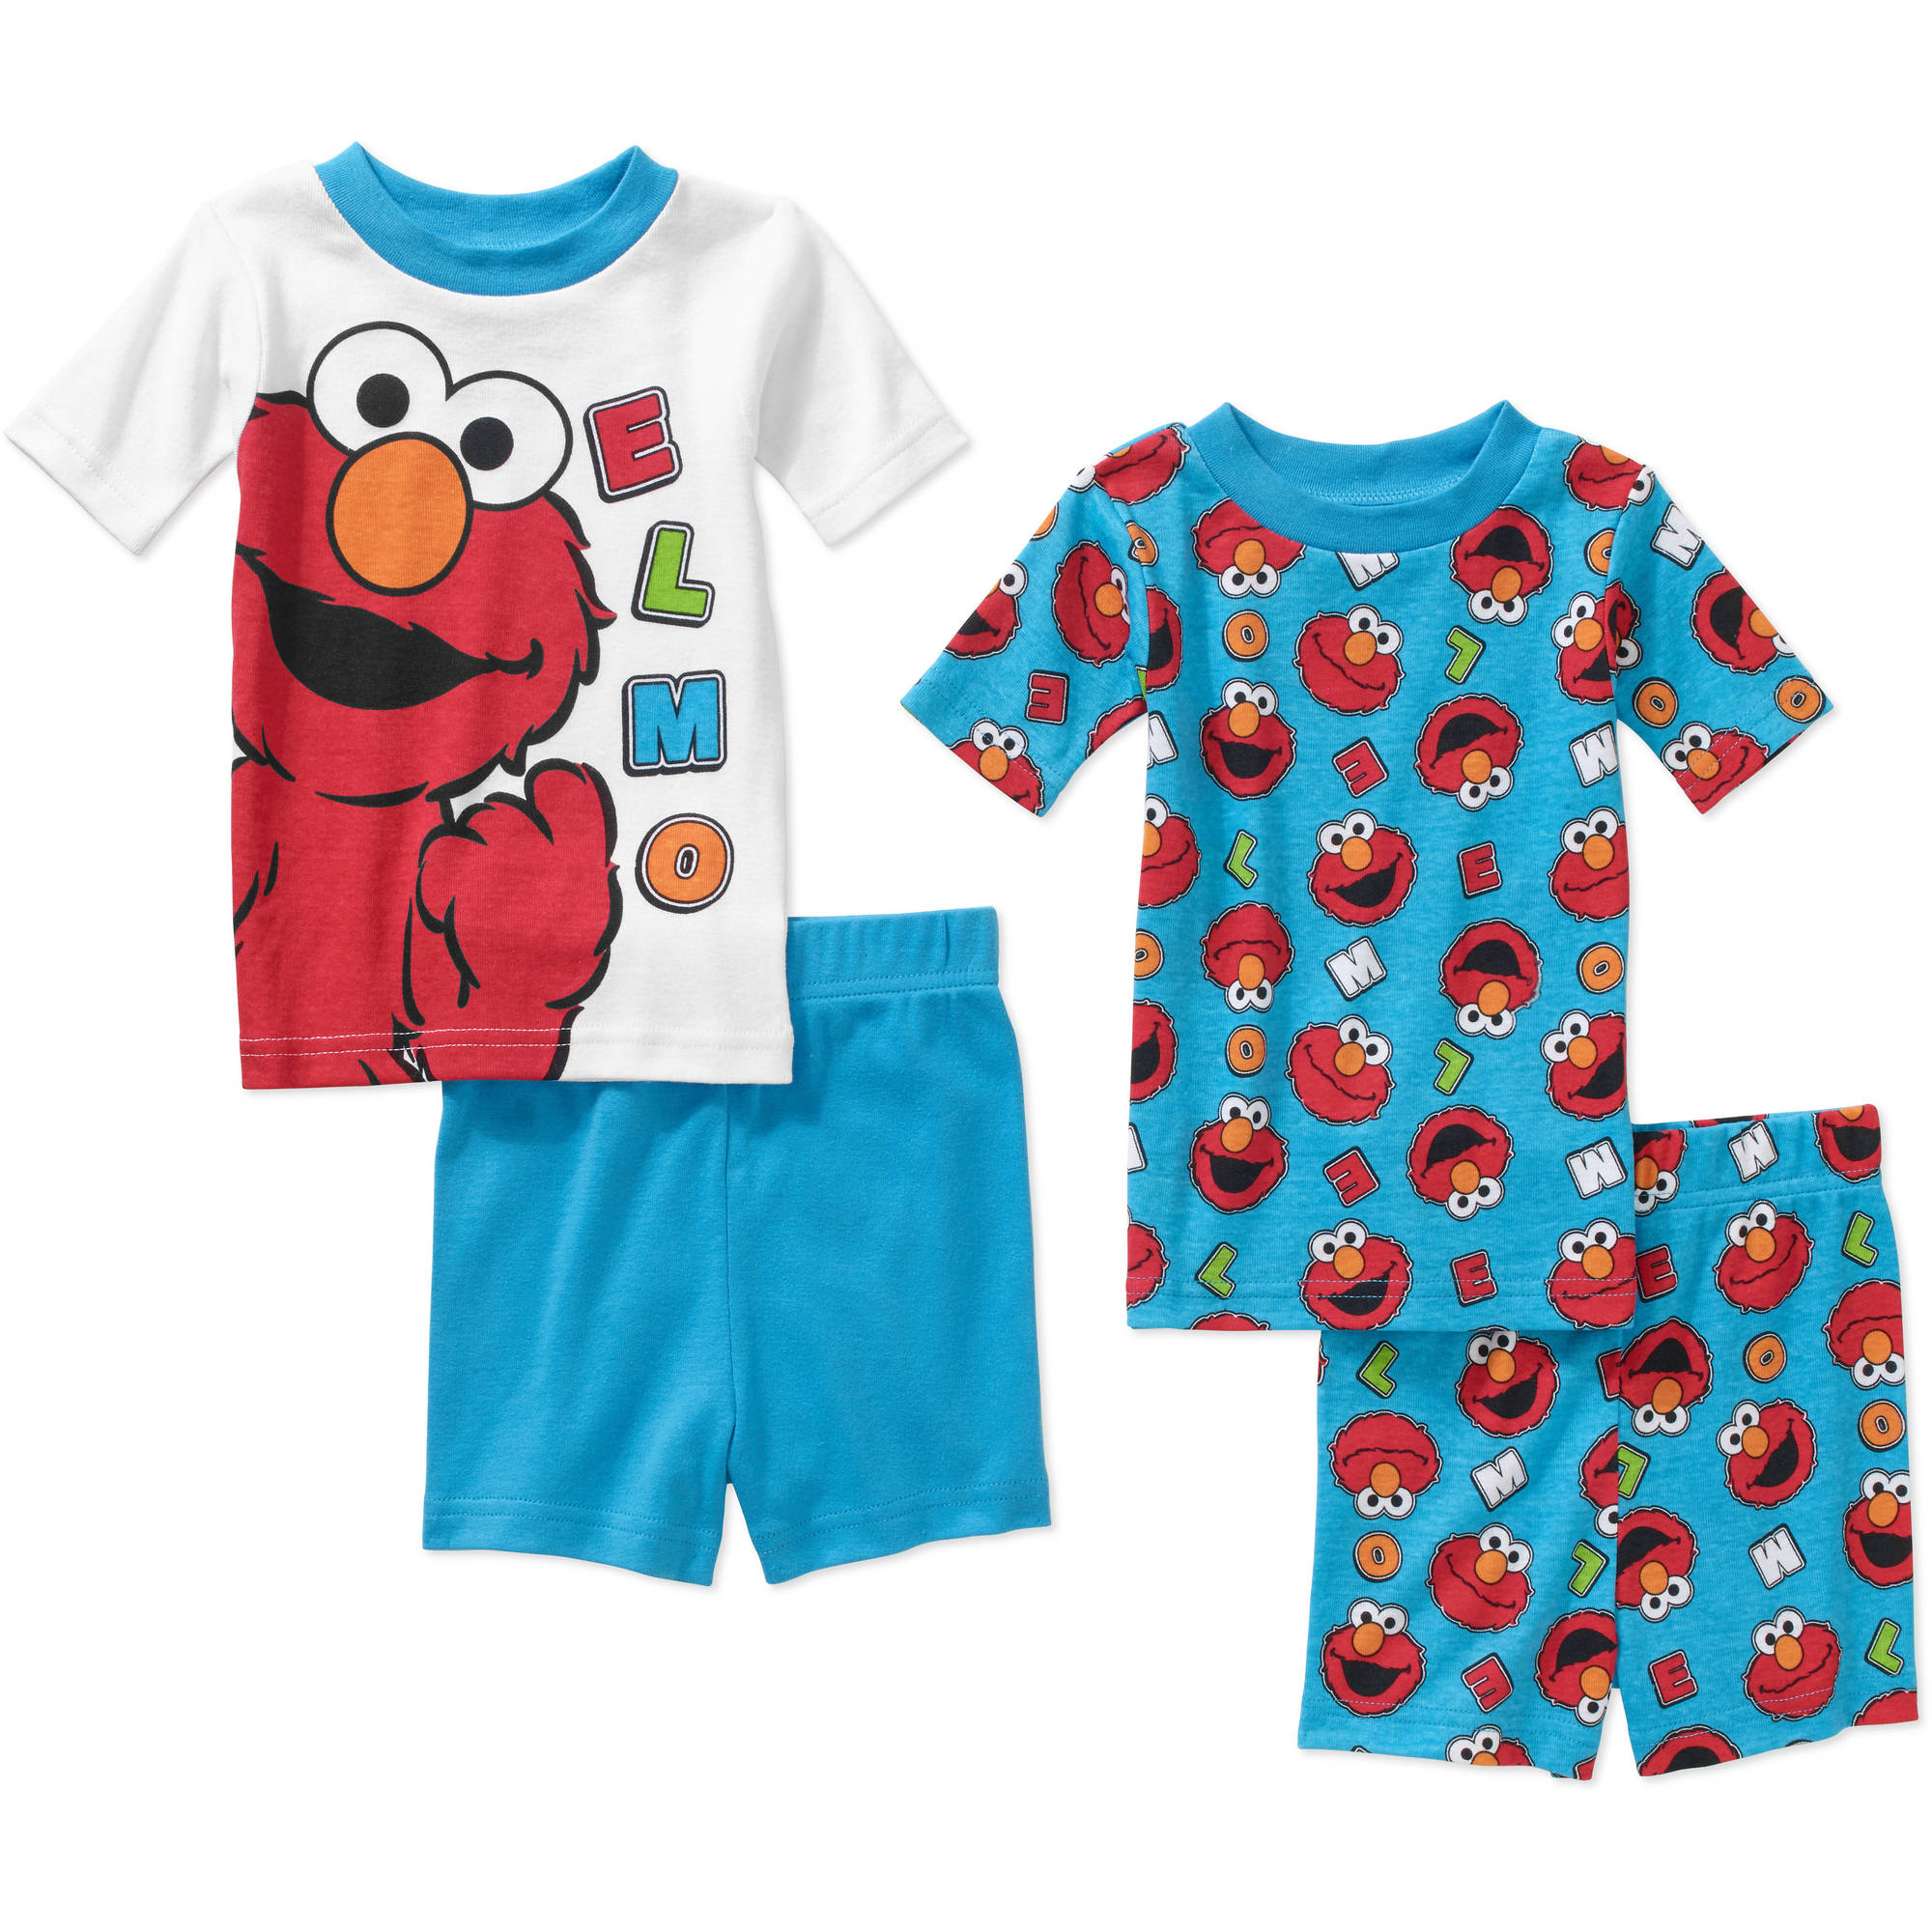 Sesame Street Elmo Infant Baby Boy' Mix n' Match Short Sleeve Cotton Tight Fit Pajamas, 4-Pieces